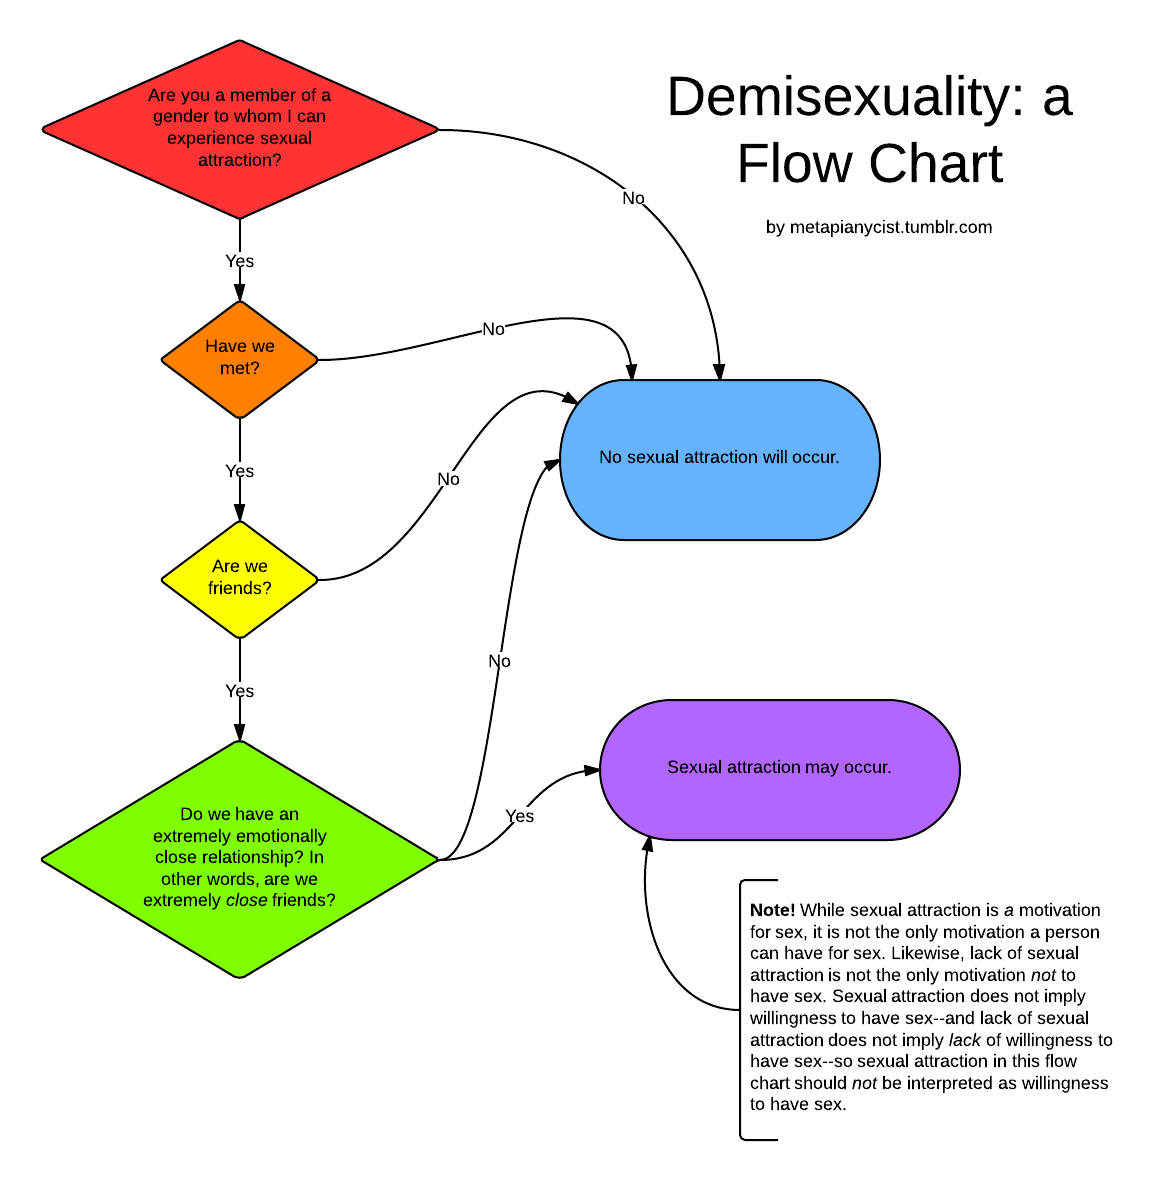 A question begged in asexual and demisexual vis ed critique of click to enlarge nvjuhfo Choice Image